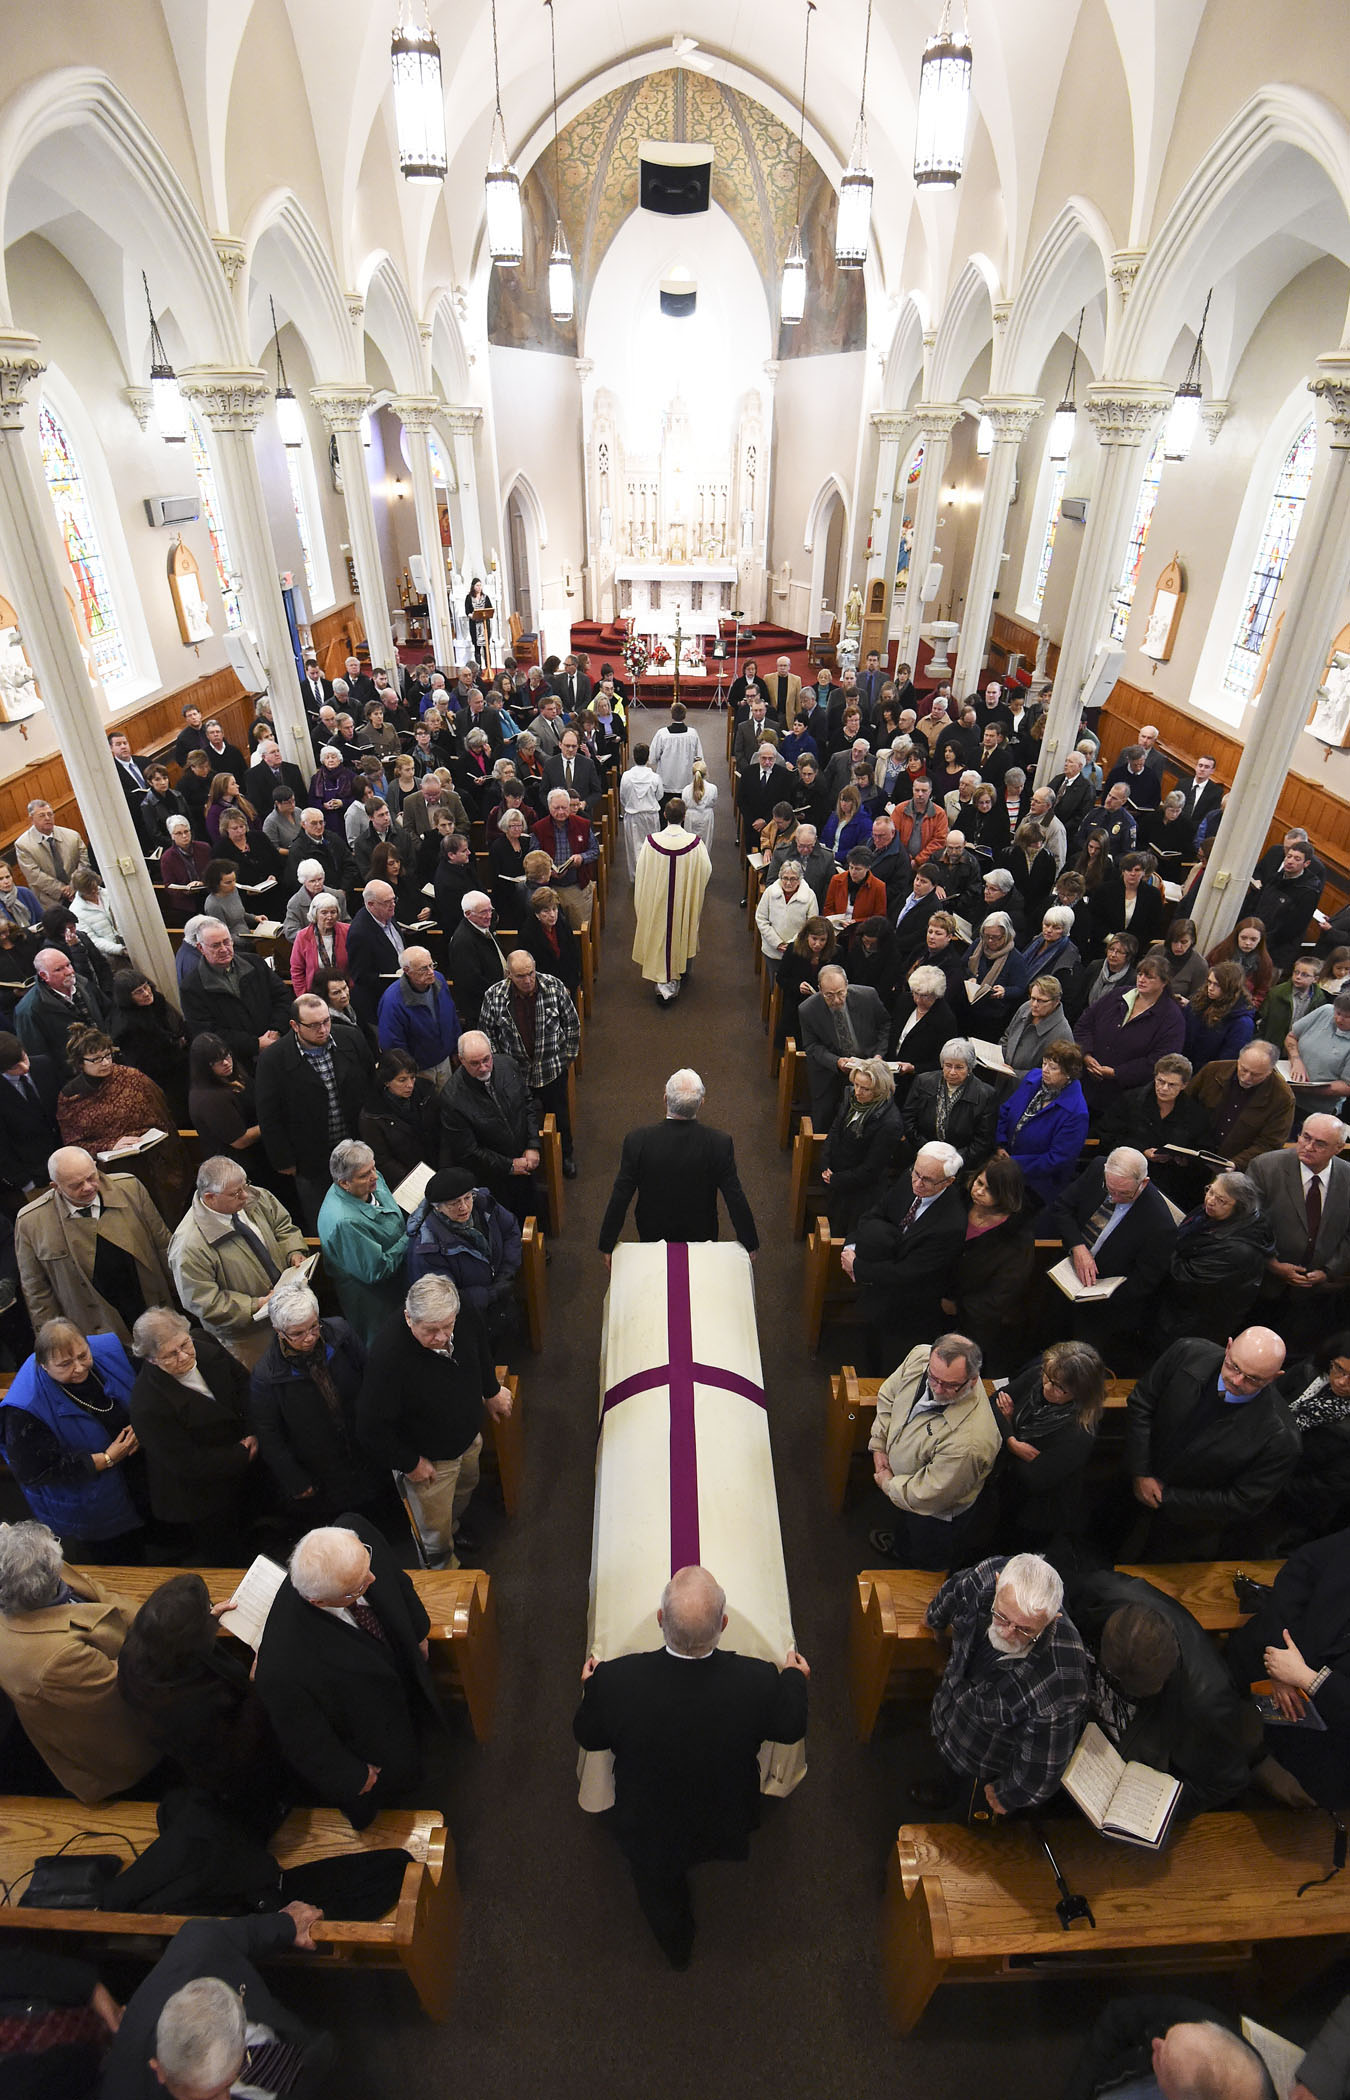 The casket carrying the body of former Brattleboro Police Chief Richard Guthrie is carried into St. Michael Catholic Church in Brattleboro, VT during a funeral service for Guthrie on Nov. 22, 2014.